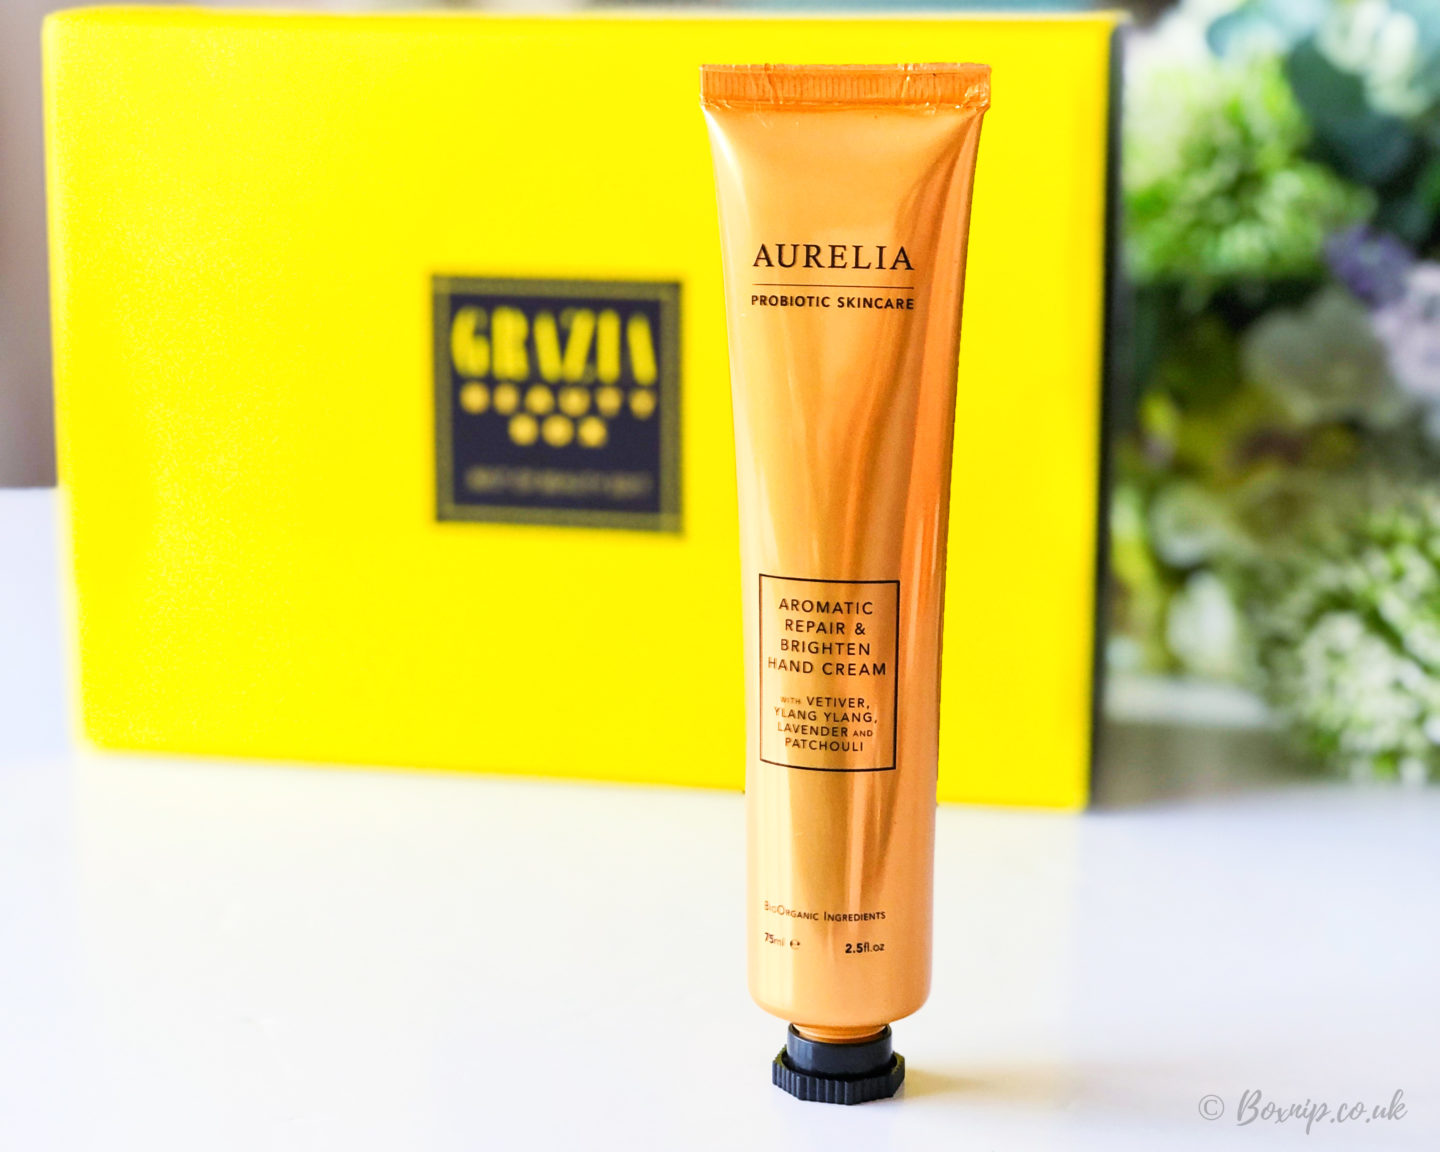 Aurelia - Aromatic Repair and Brighten Hand Cream from the Grazia Best of Beauty Box